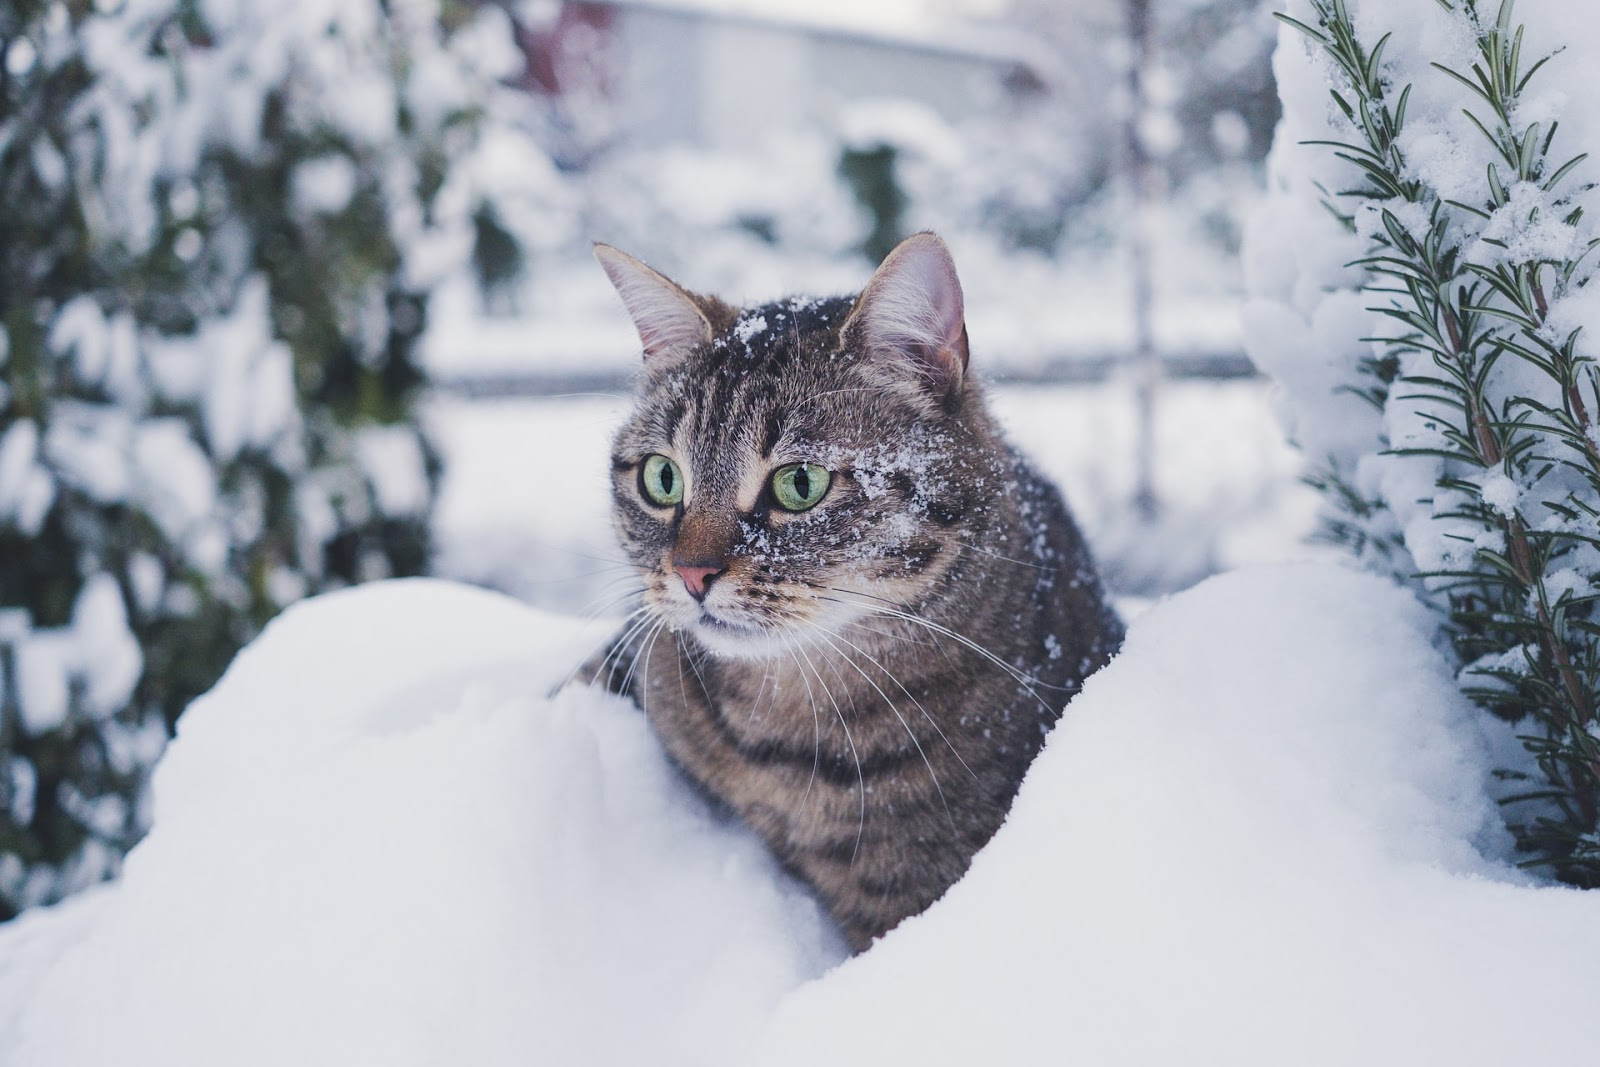 A tabby cat with green eyes, sits in a small snowpile.